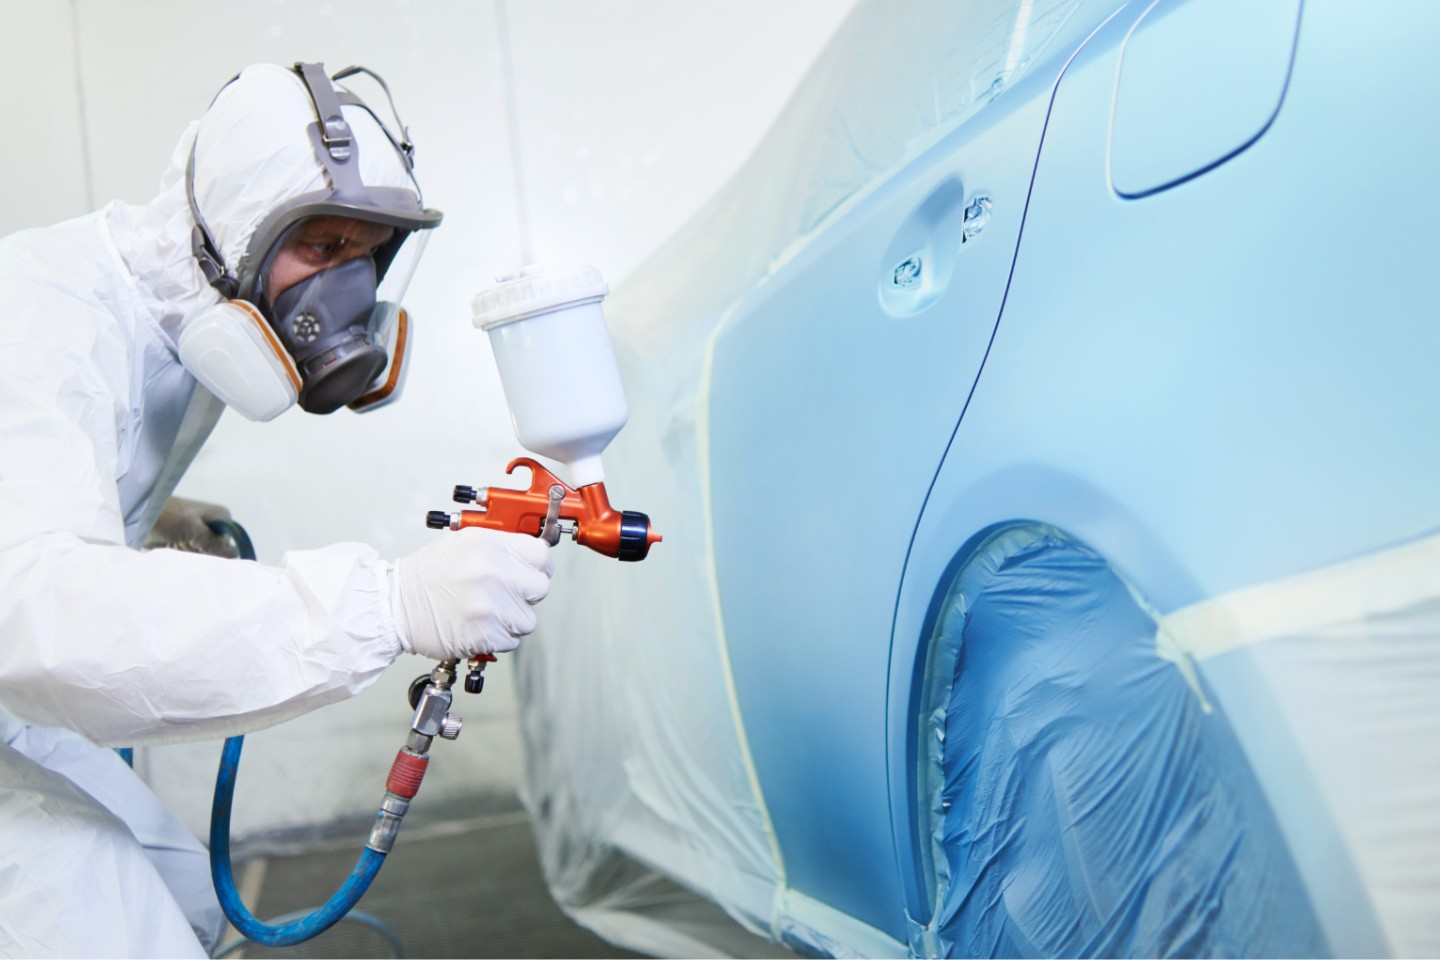 Thanks to the use of Covestro's Ultra line of coating hardeners with very low residual levels of free isocyanates, automotive refinish coatings from BASF's Coatings division can meet a new standard in industrial hygiene. (Source: Covestro)